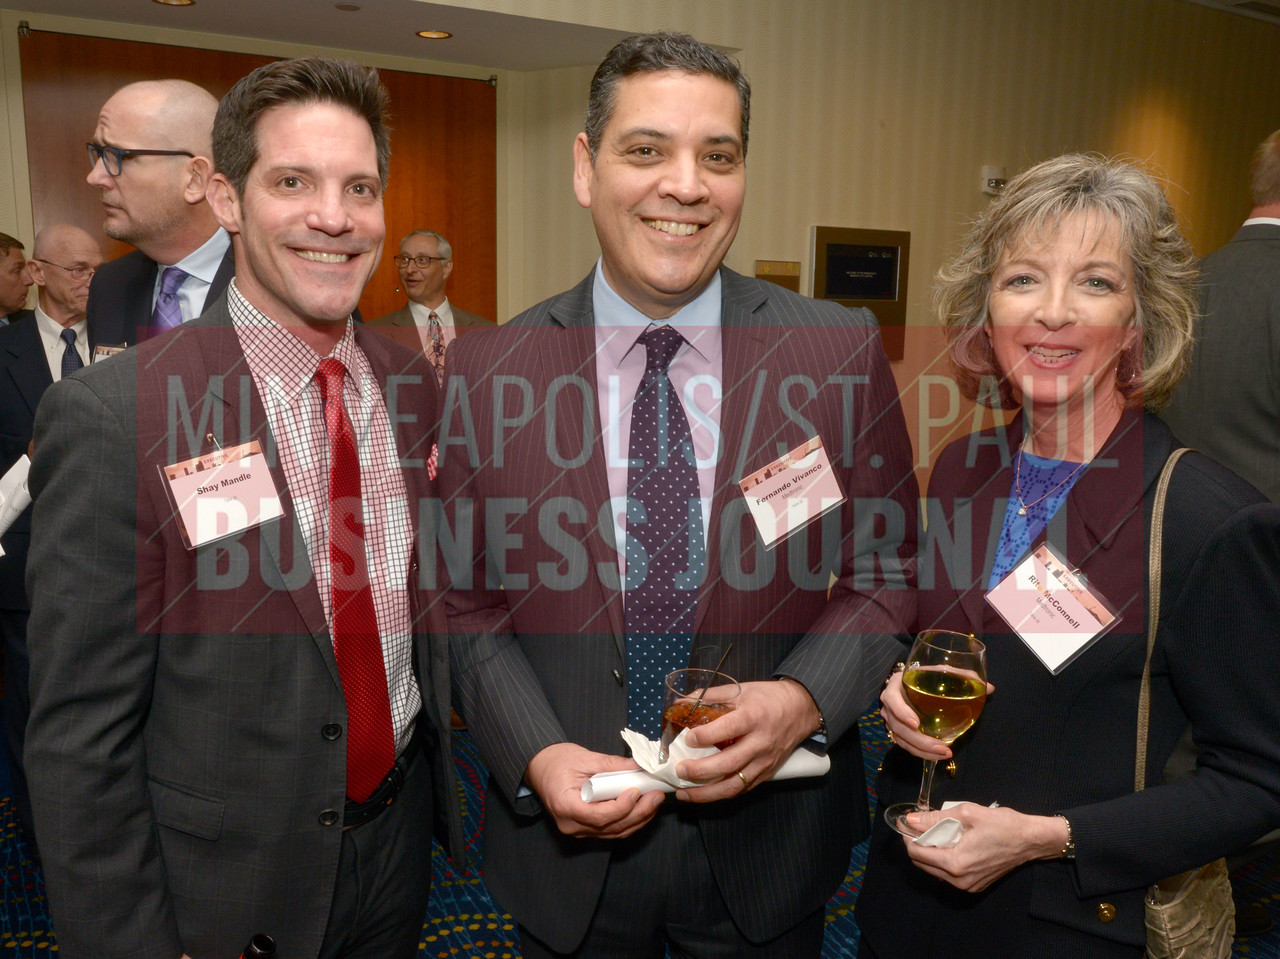 From left, Shay Mandle, Fernando Vivanco and Rita McConnell